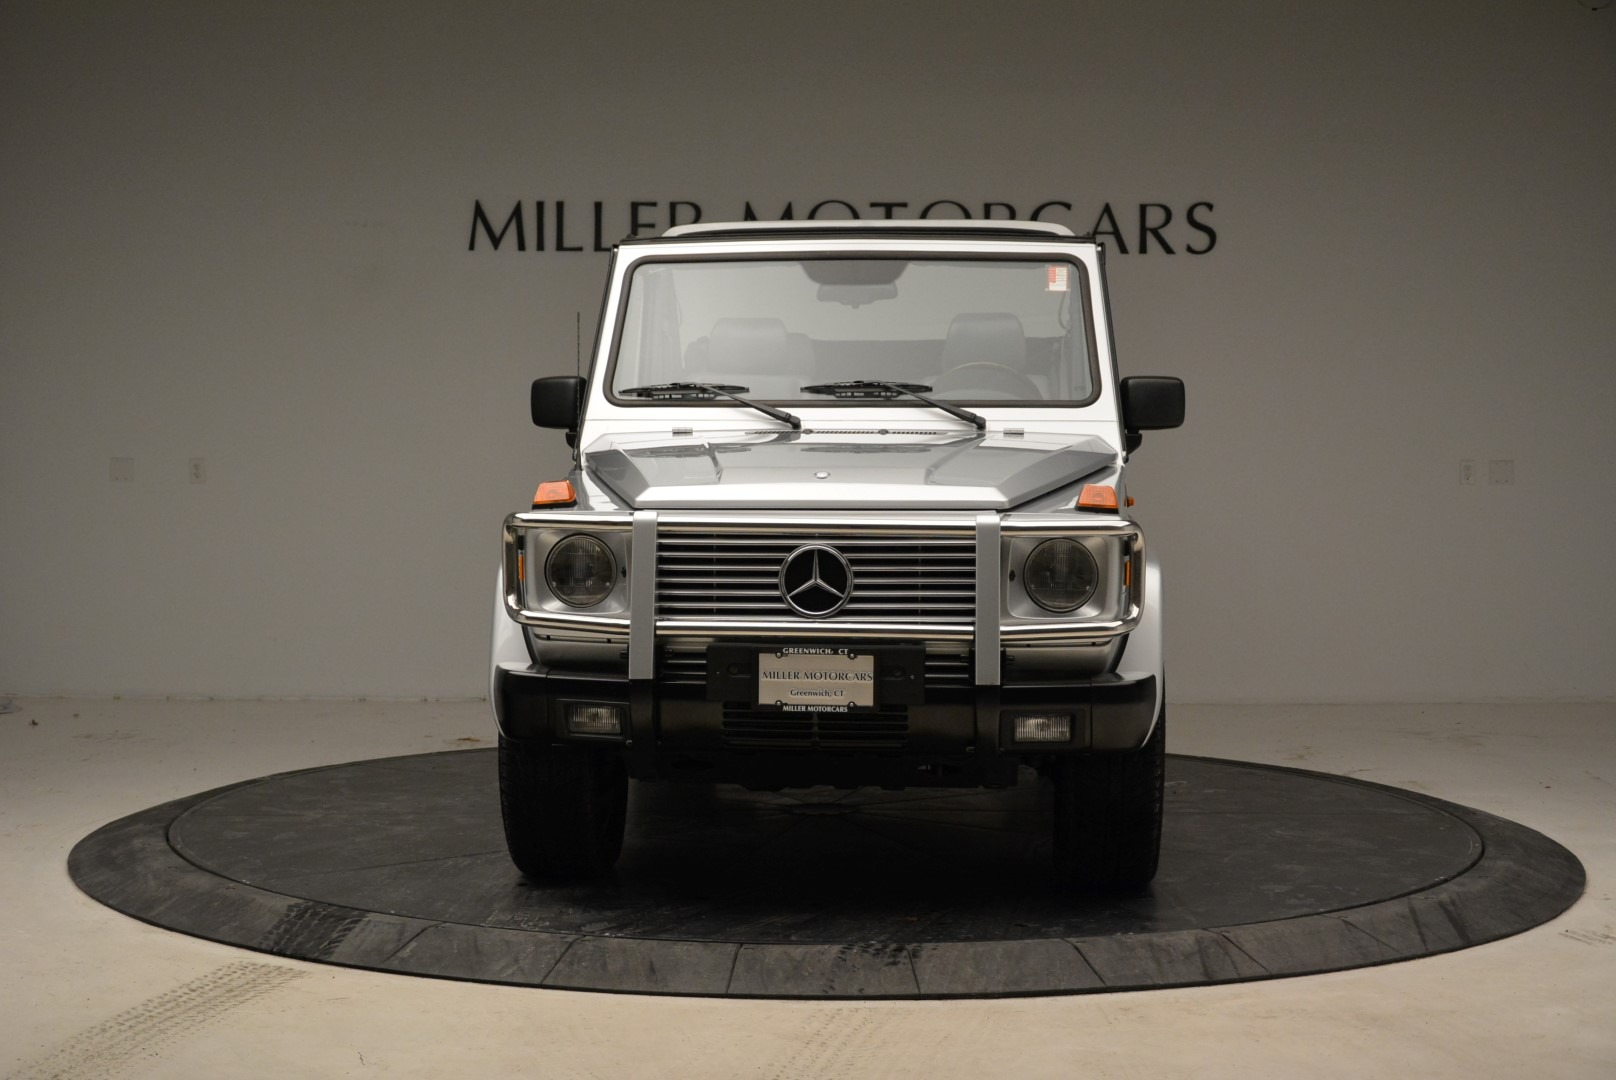 Used 1999 Mercedes Benz G500 Cabriolet For Sale In Greenwich, CT 1961_p12